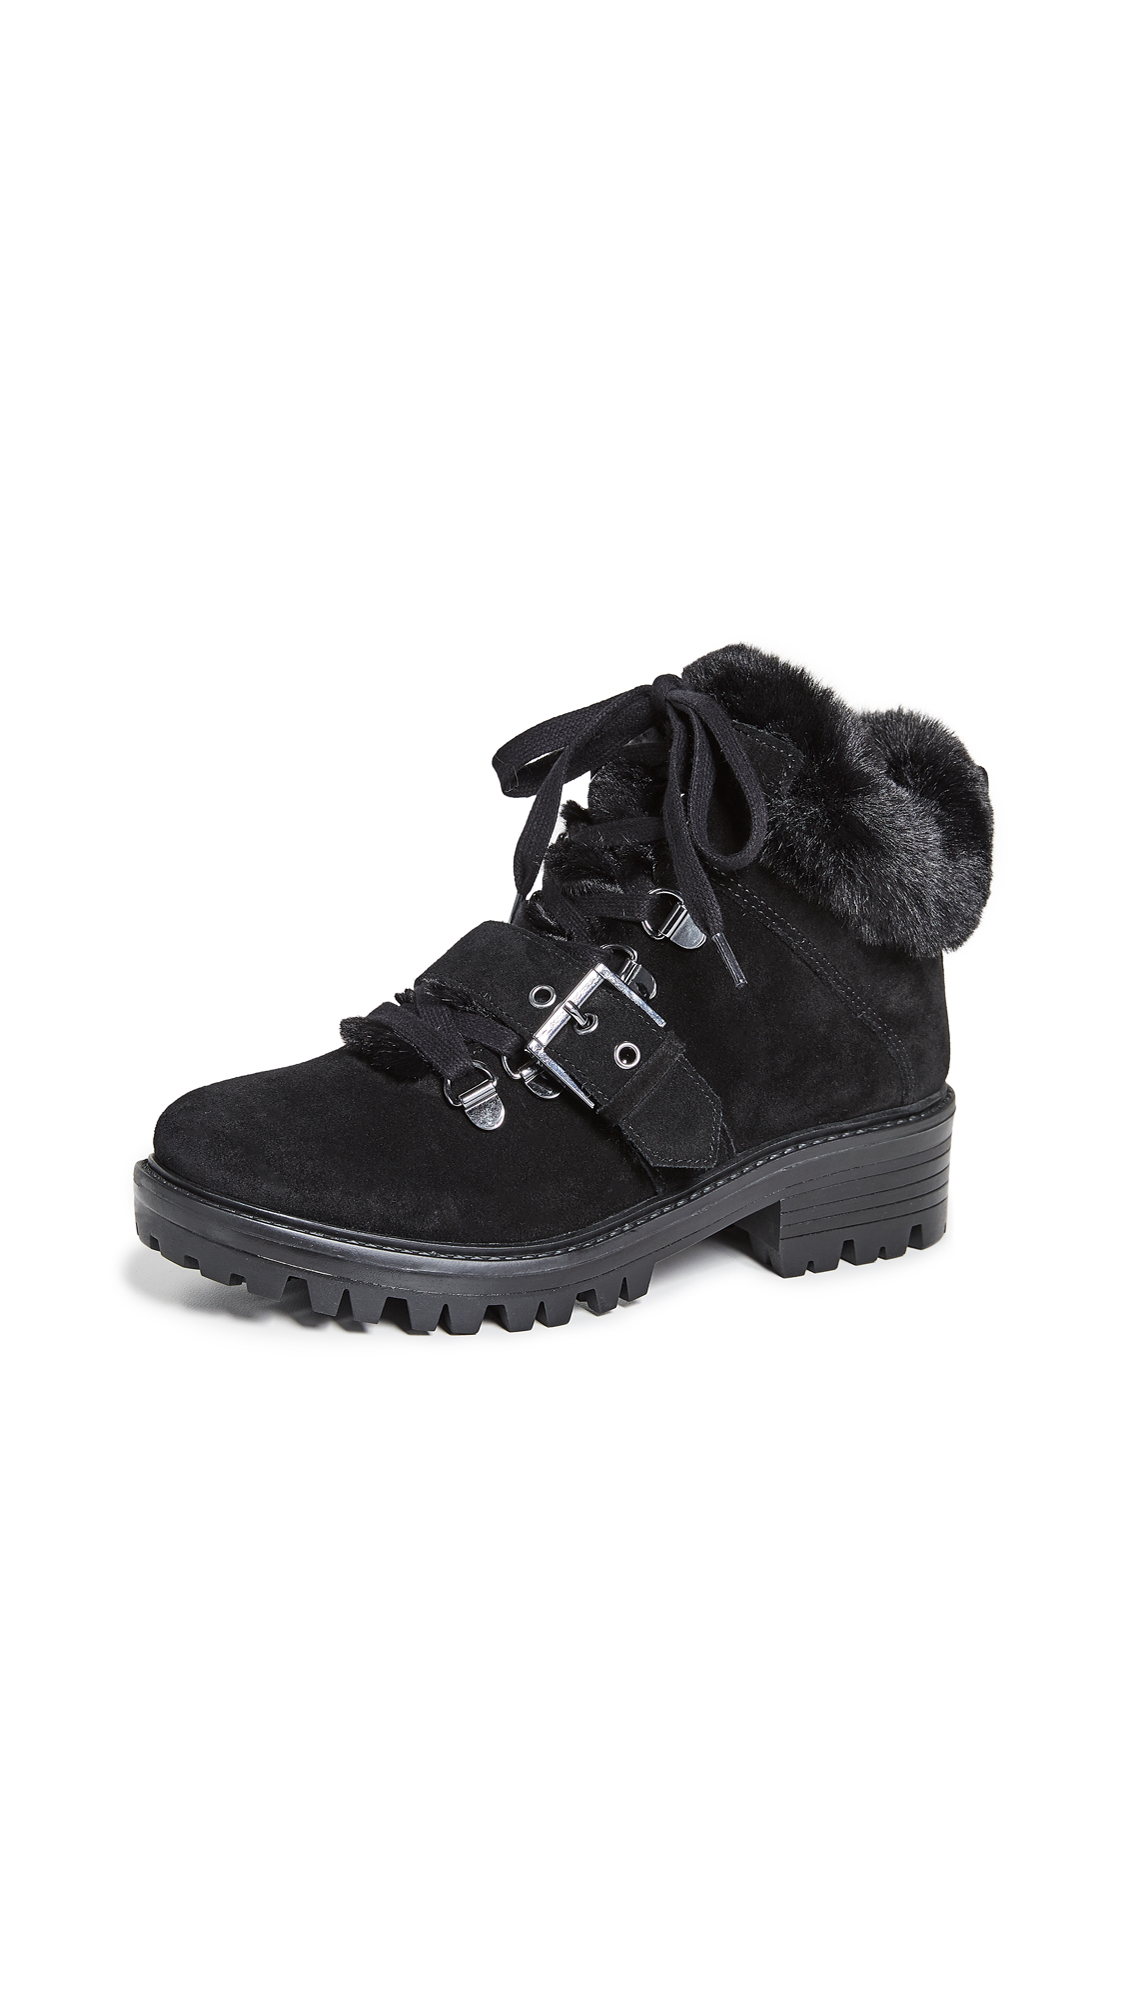 KENDALL + KYLIE Edison Combat Boots - Black